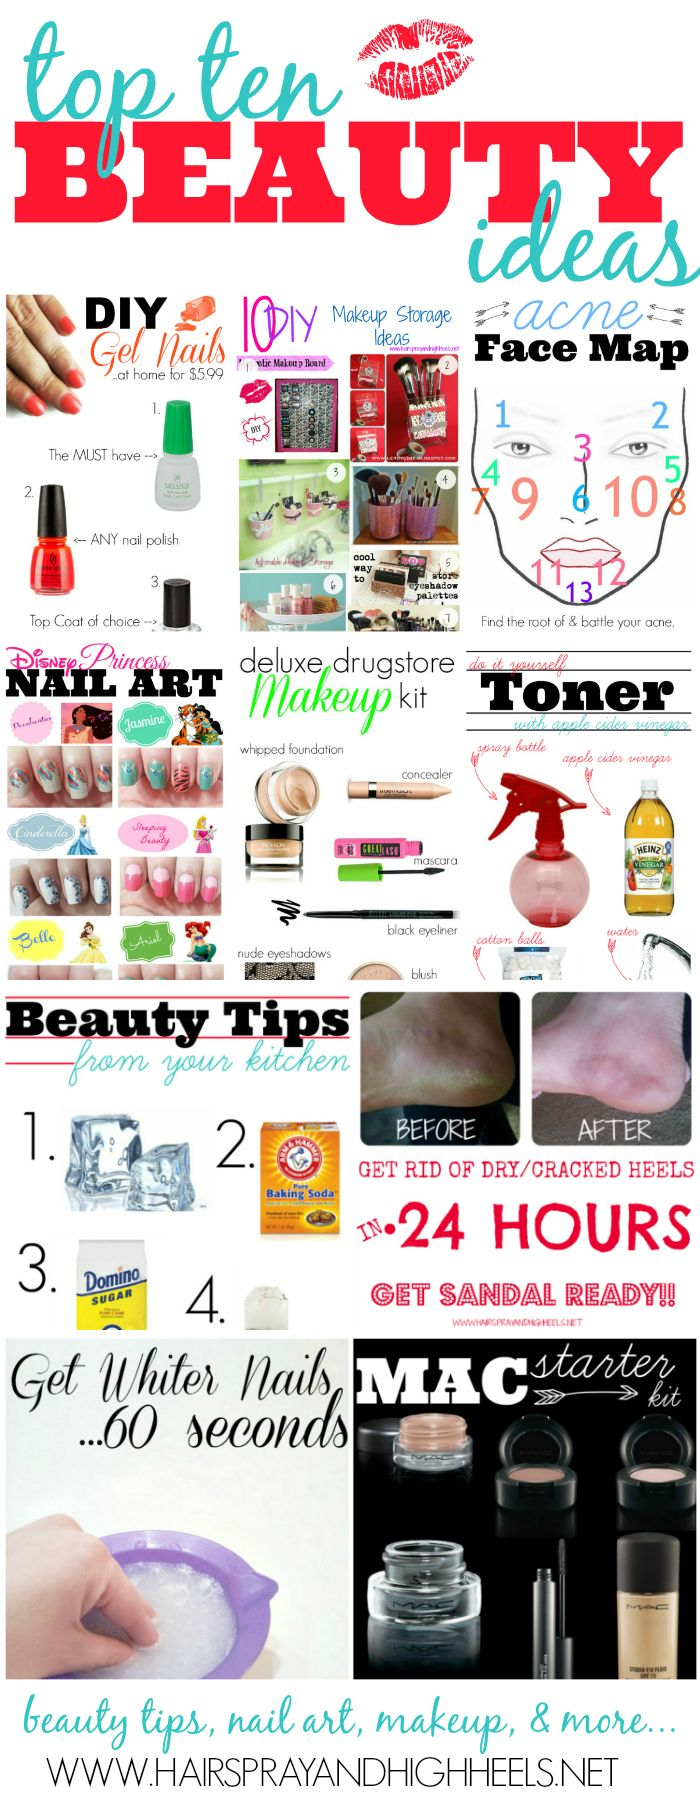 TOP 10 Beauty Ideas via @Krista Knight and HighHeels                                                                                                                   Hairspray and HighHeels                                                                   • 6 weeks ago                                                                                                   Top Ten Beauty Ideas Of 2013 via www.hairsprayandh…